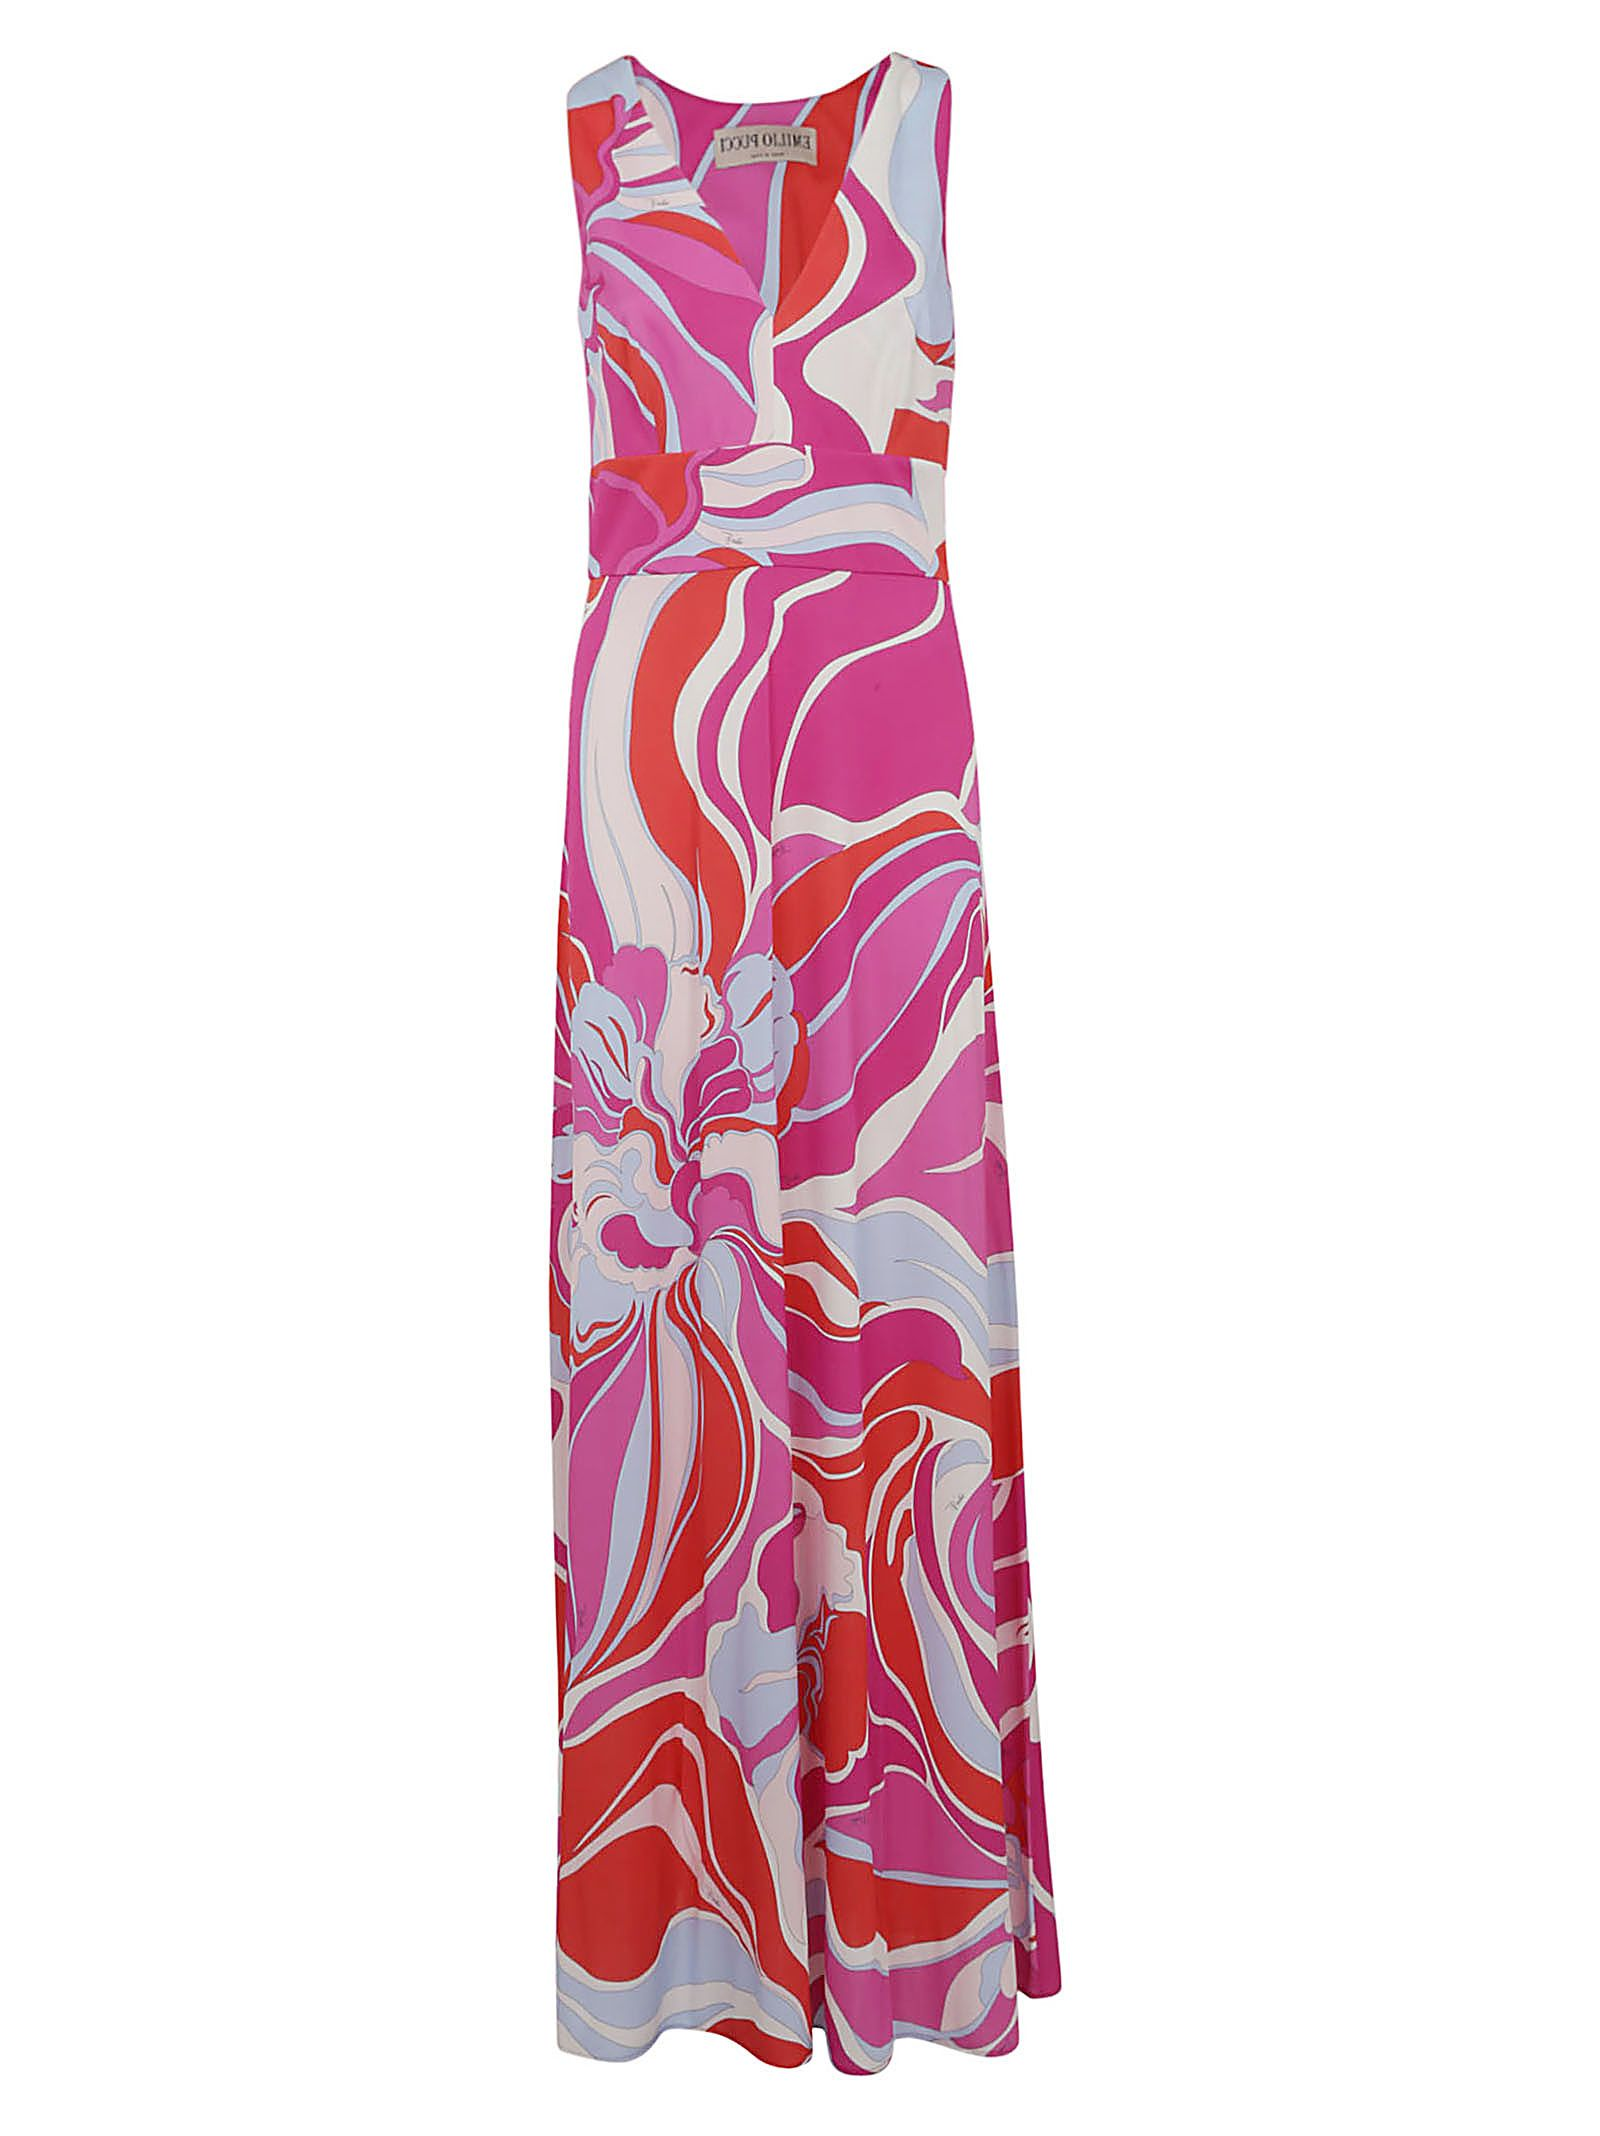 Emilio Pucci Graphic Print Long Dress